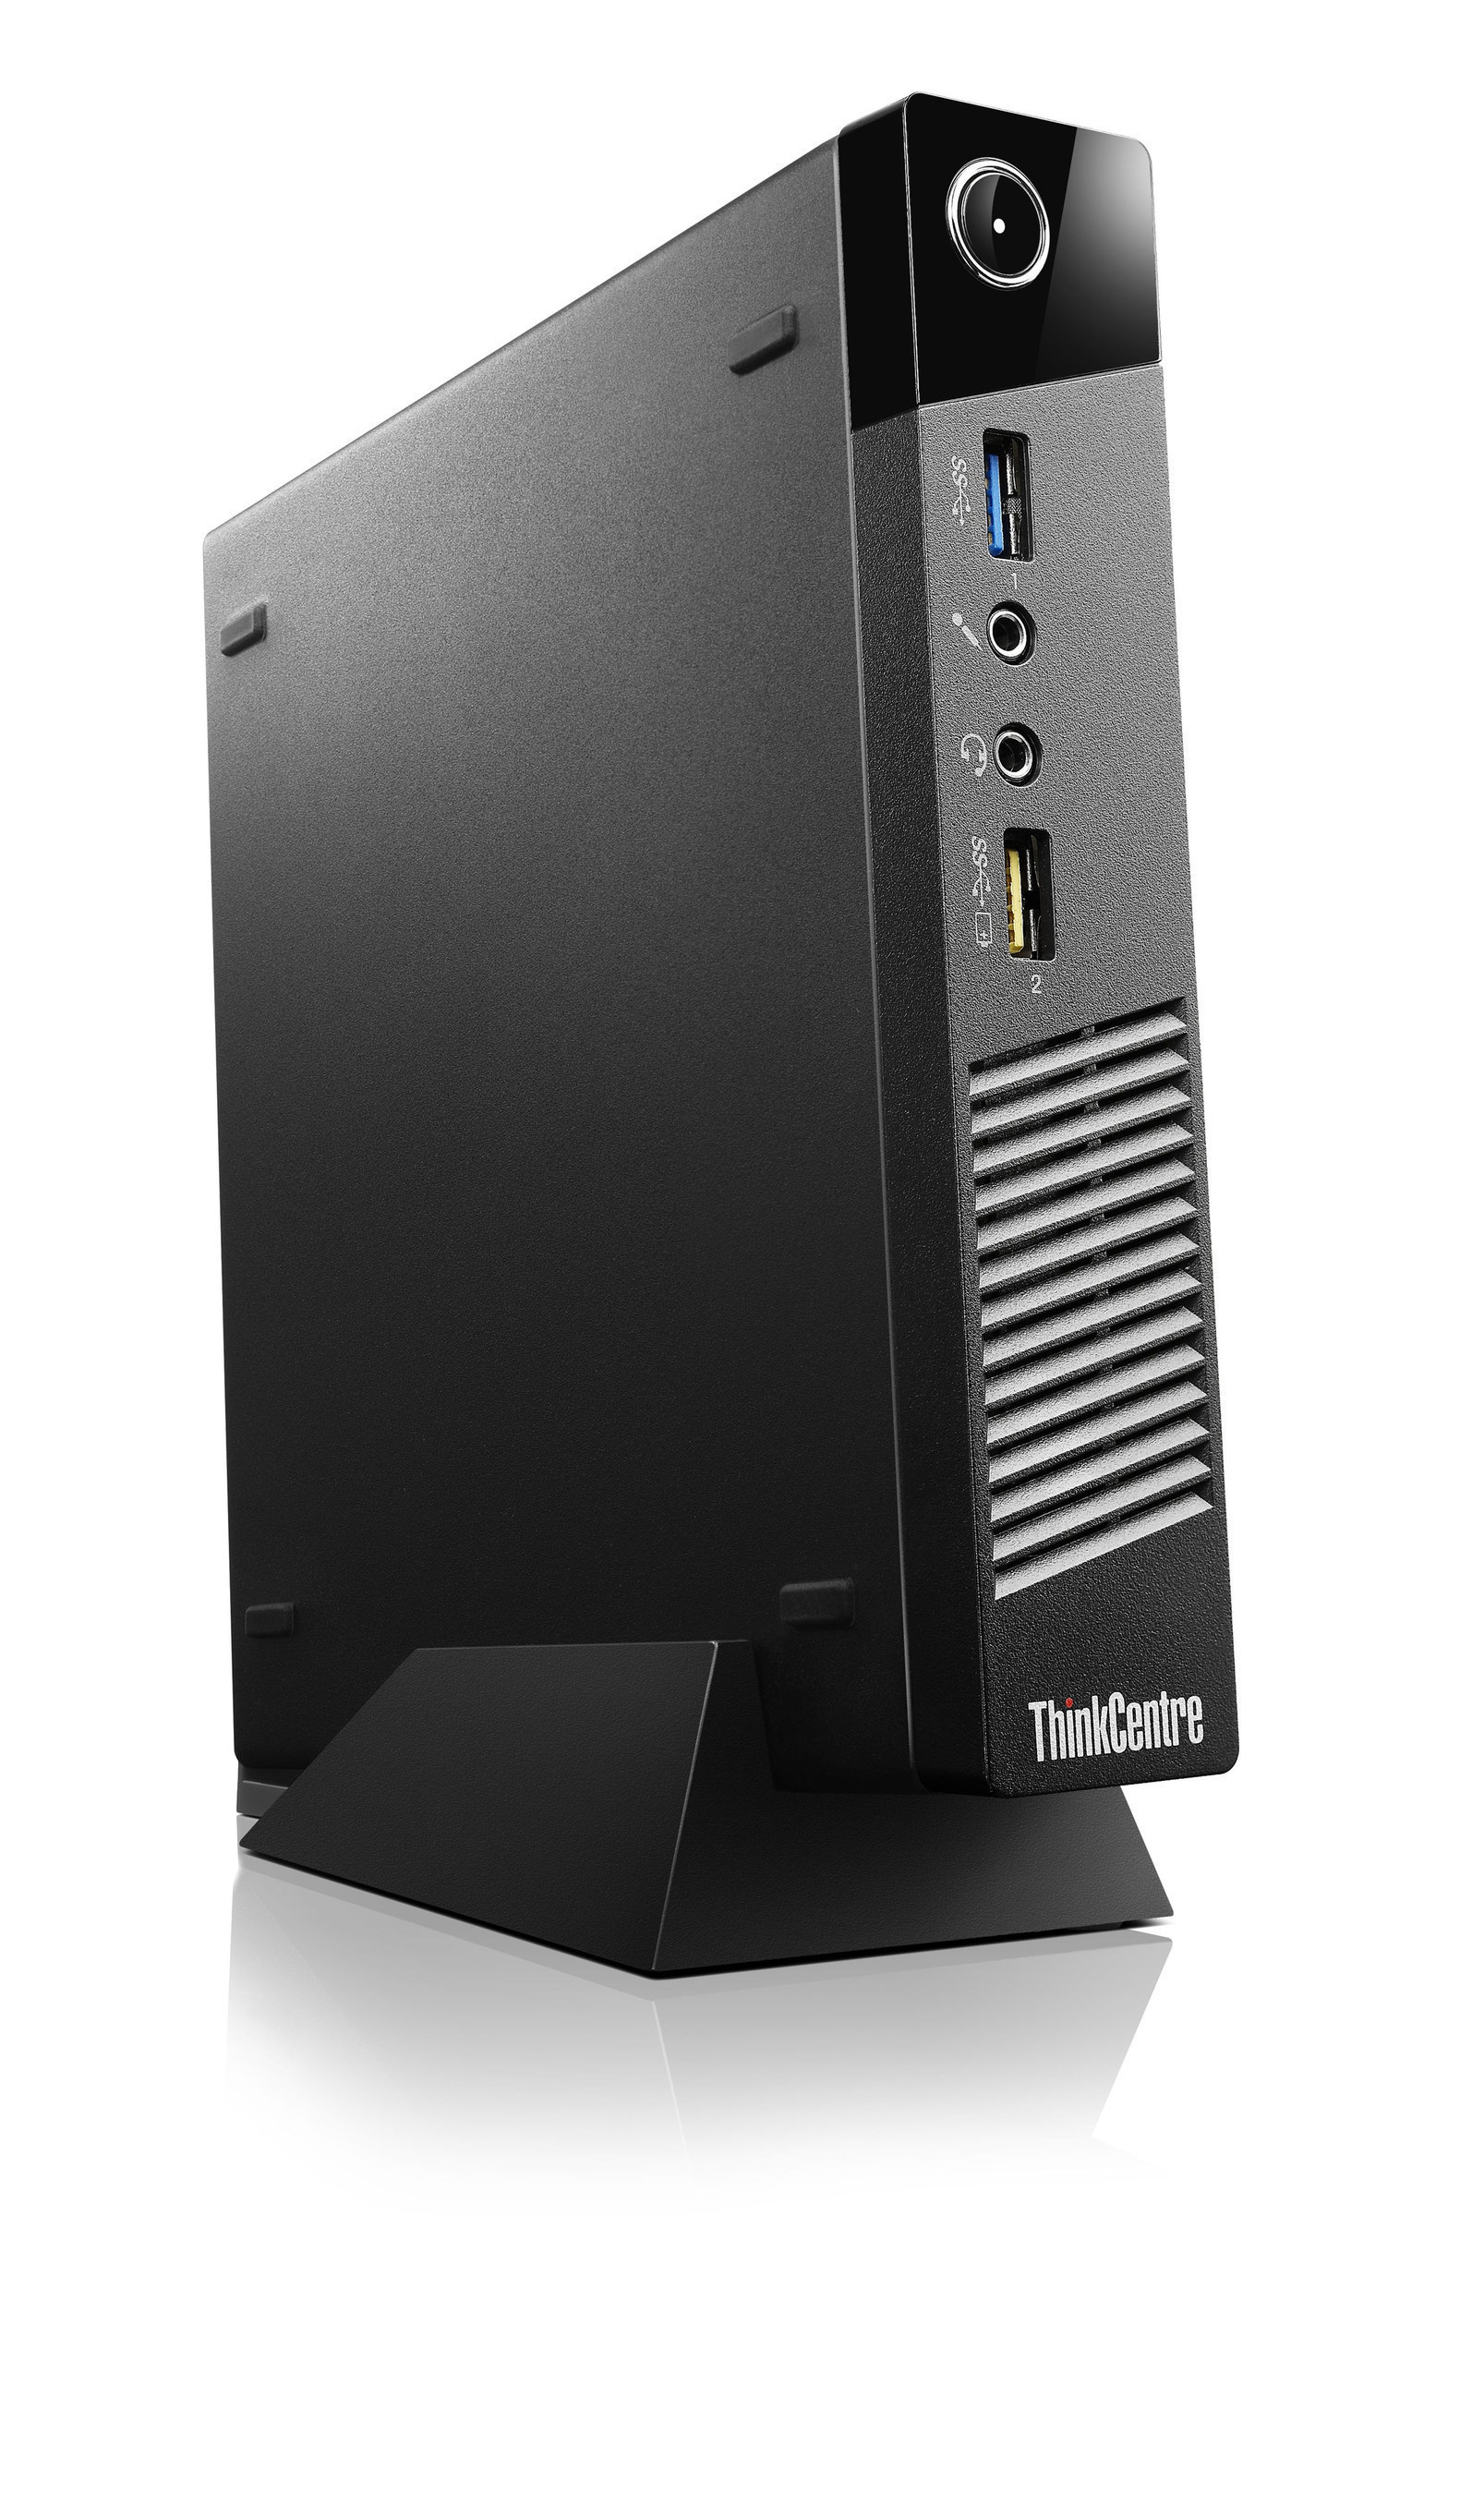 Lenovo Showcasing ThinkCentre M73 and Tiny-in-One Thin Client Solution at HETT Expo 2015